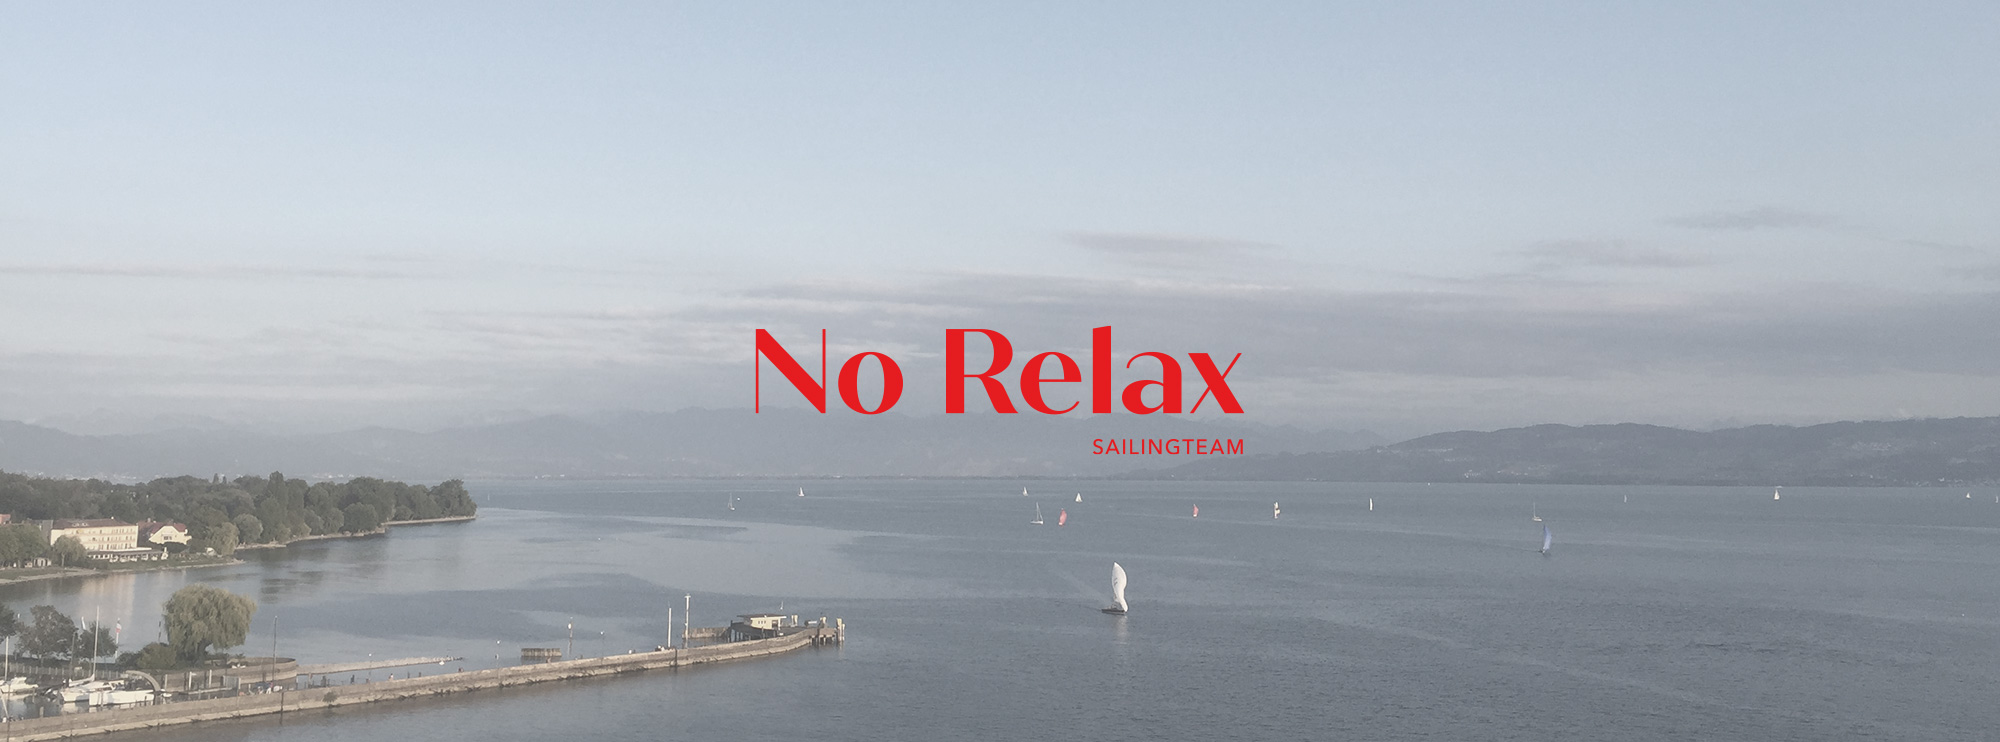 und co no relax logo branding lake of canstance